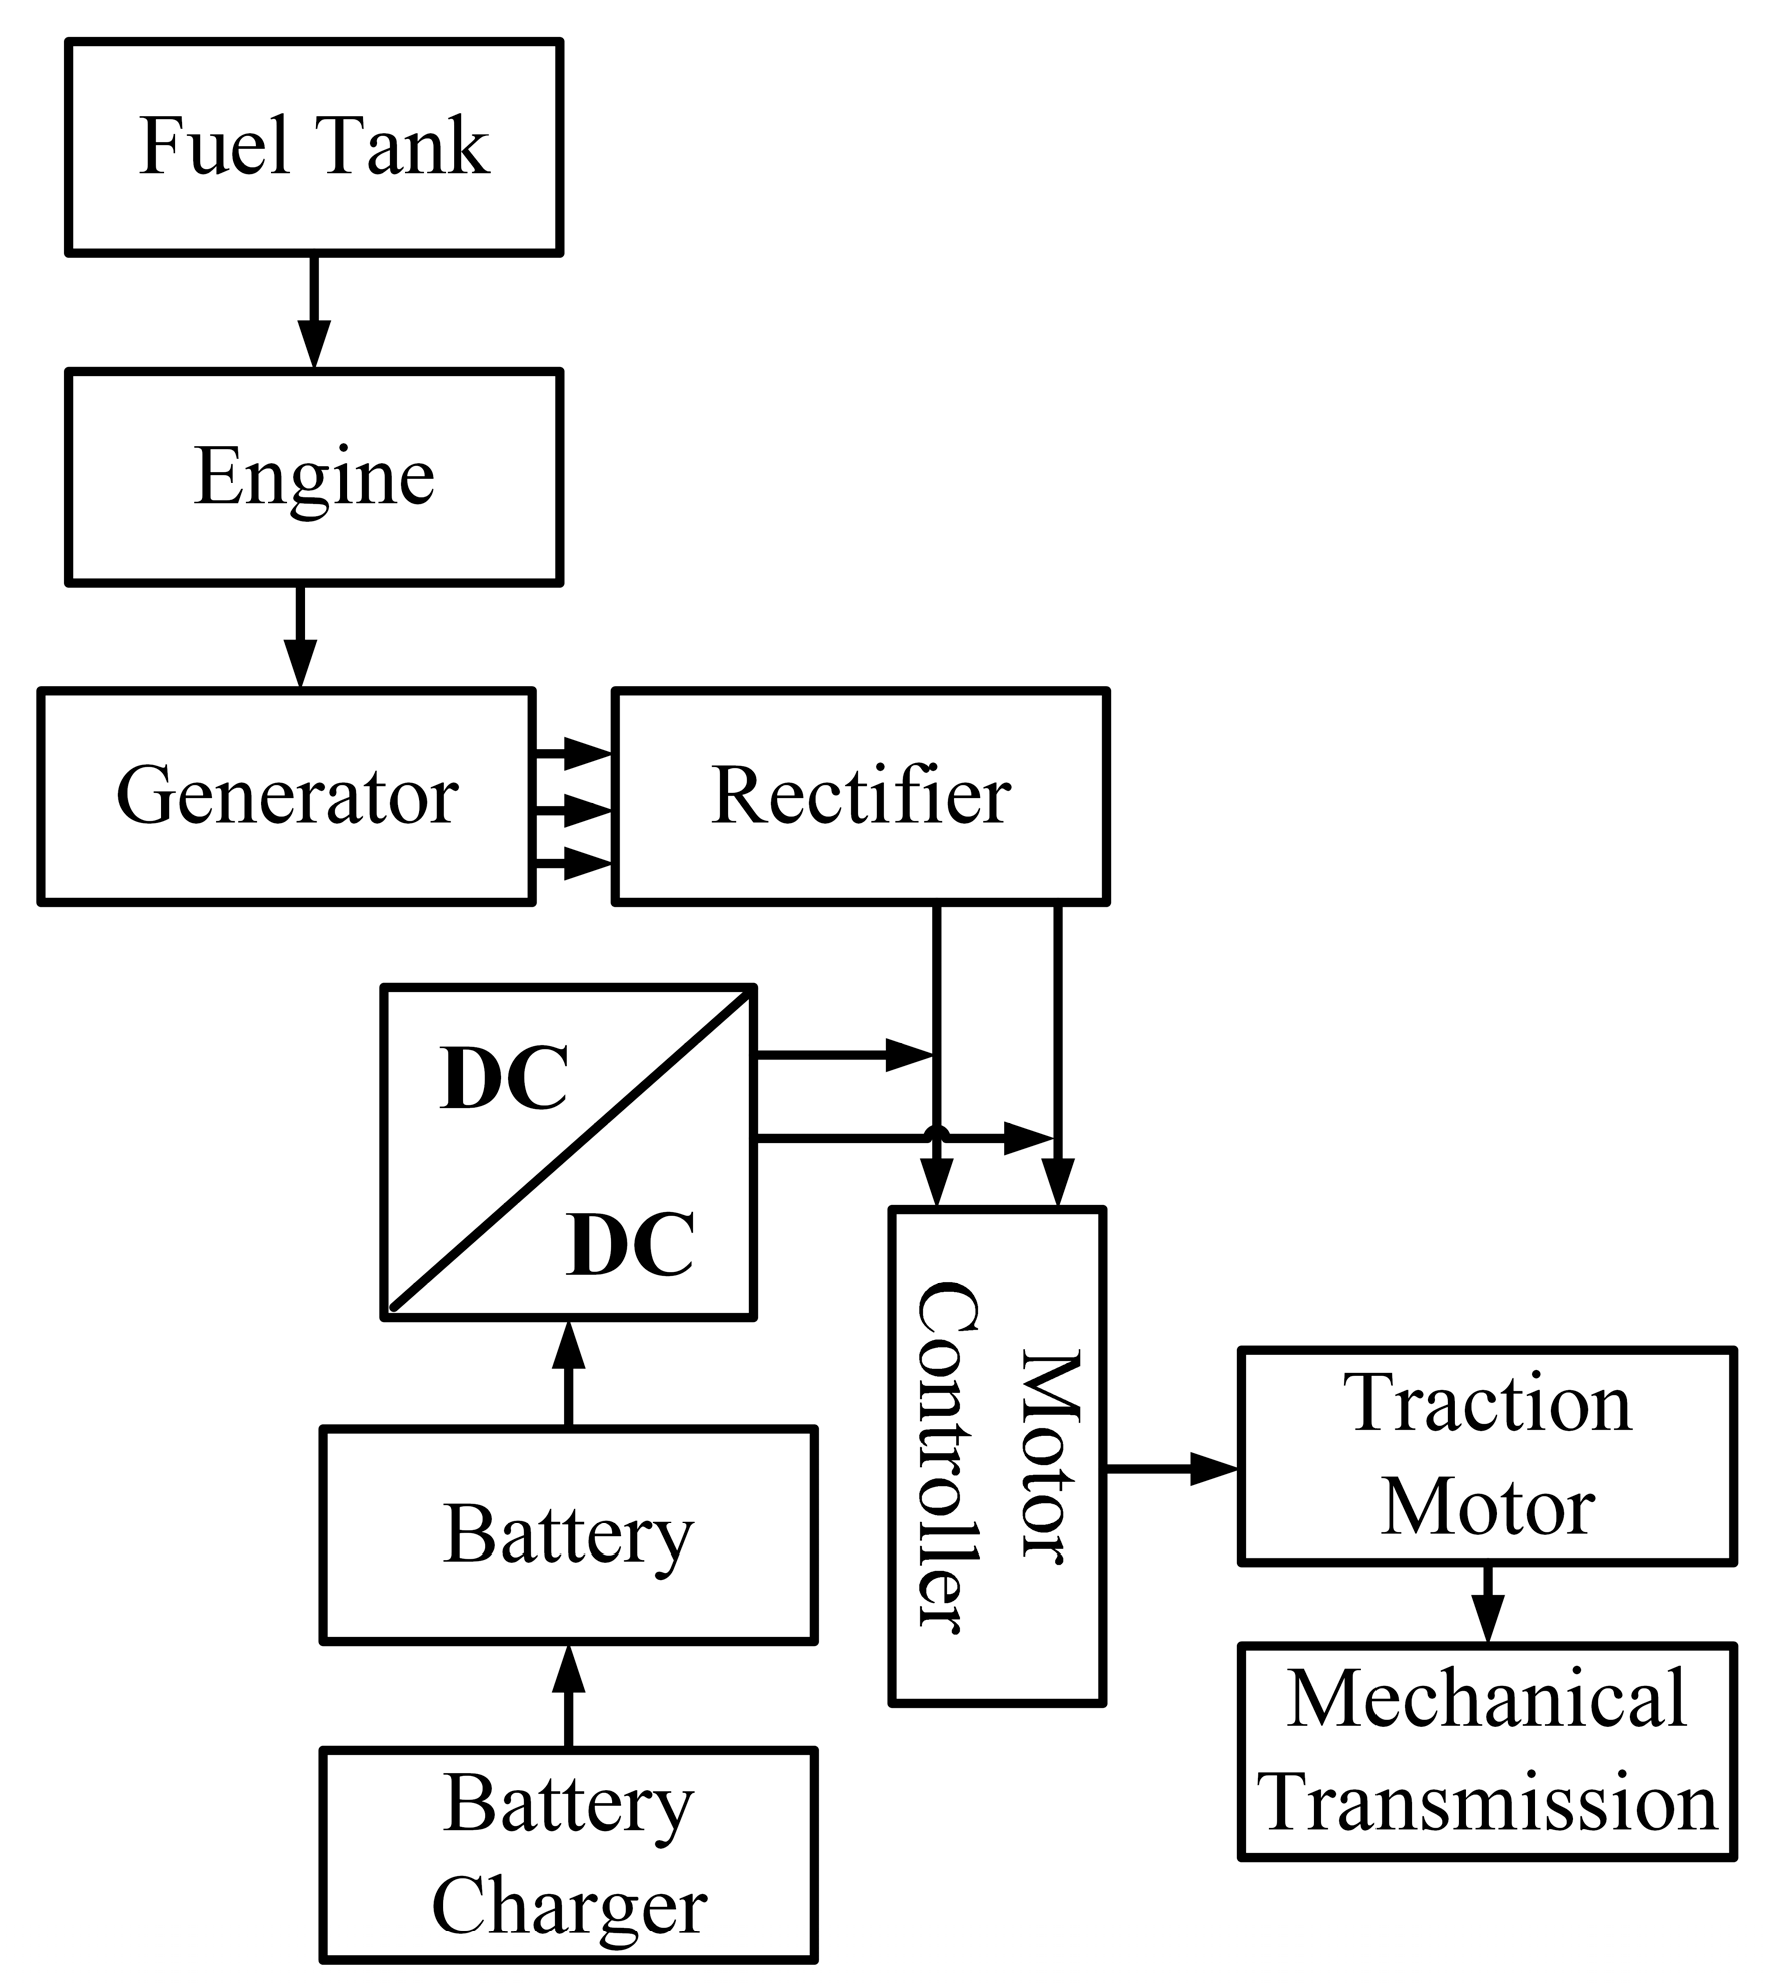 Energies Free Full Text A Comprehensive Study Of Key Electric Diagram Besides Ford Fuel Tank Selector Valve Wiring On E 450 10 01217 G018